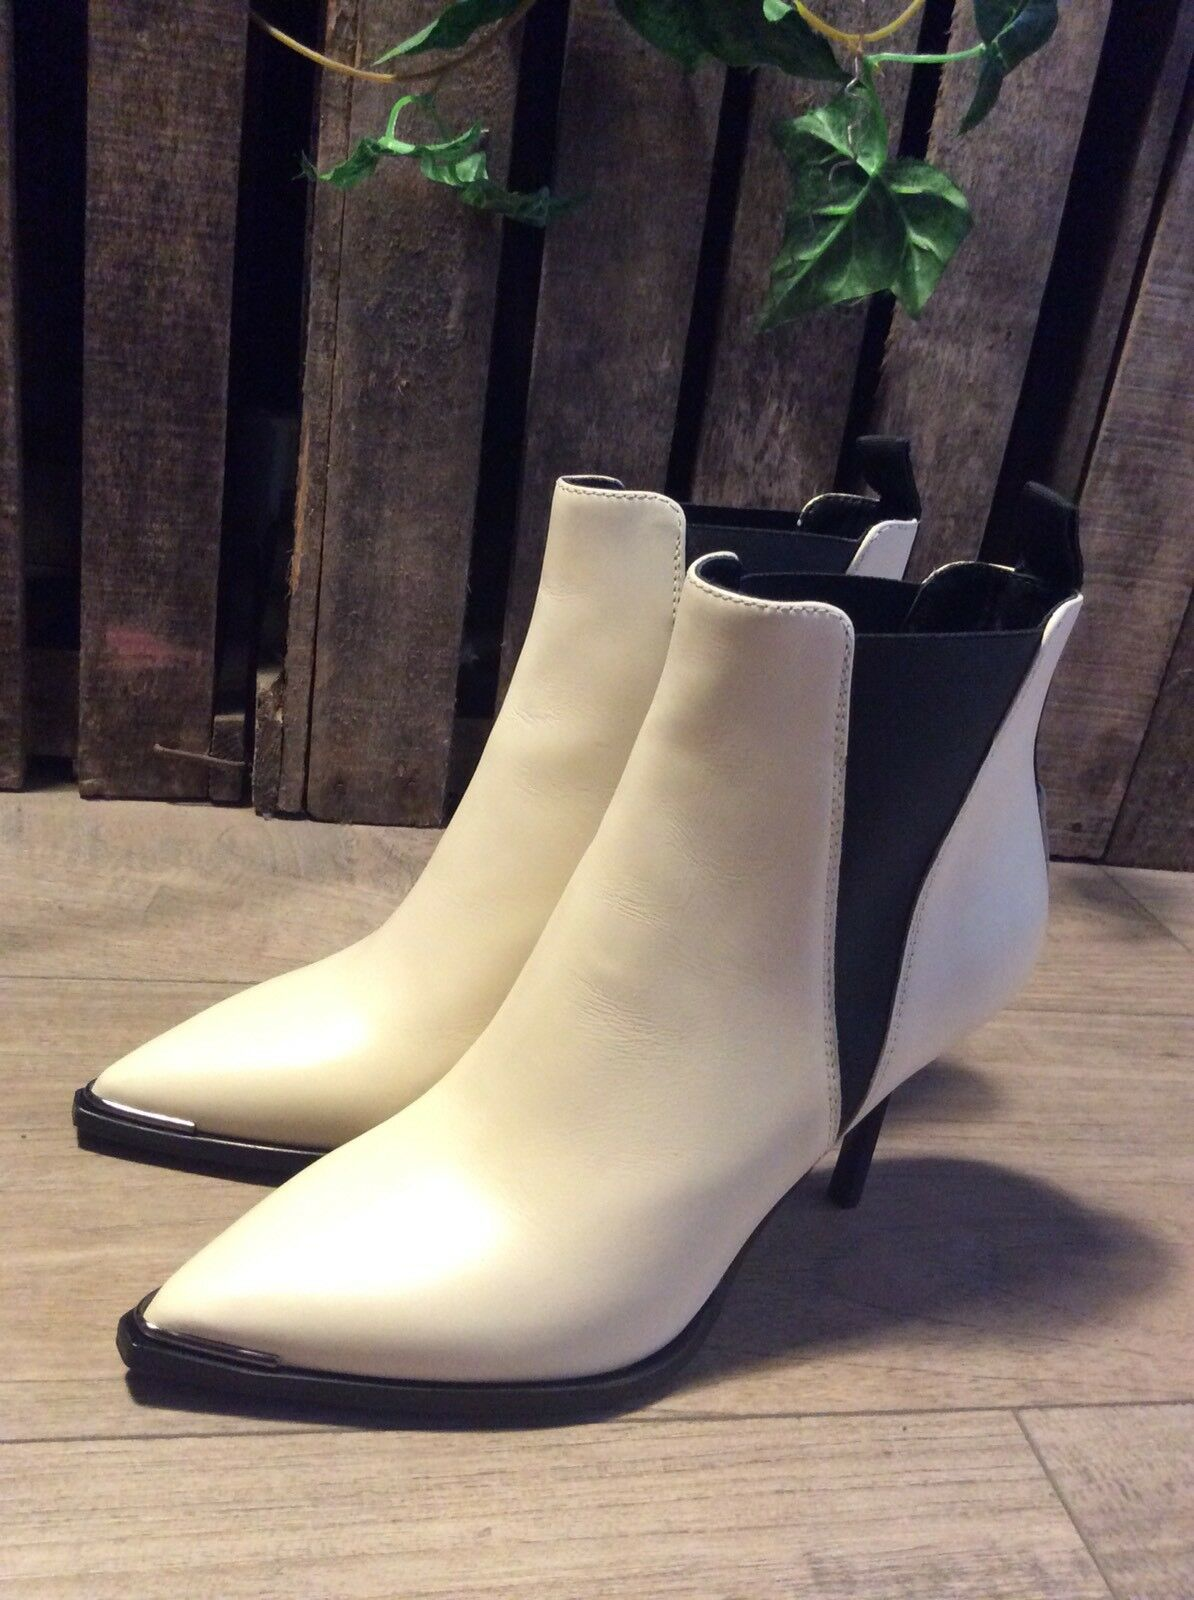 ACNE Studios JENS Colour-Cream elegant stiletto boots (BRAND NEW)